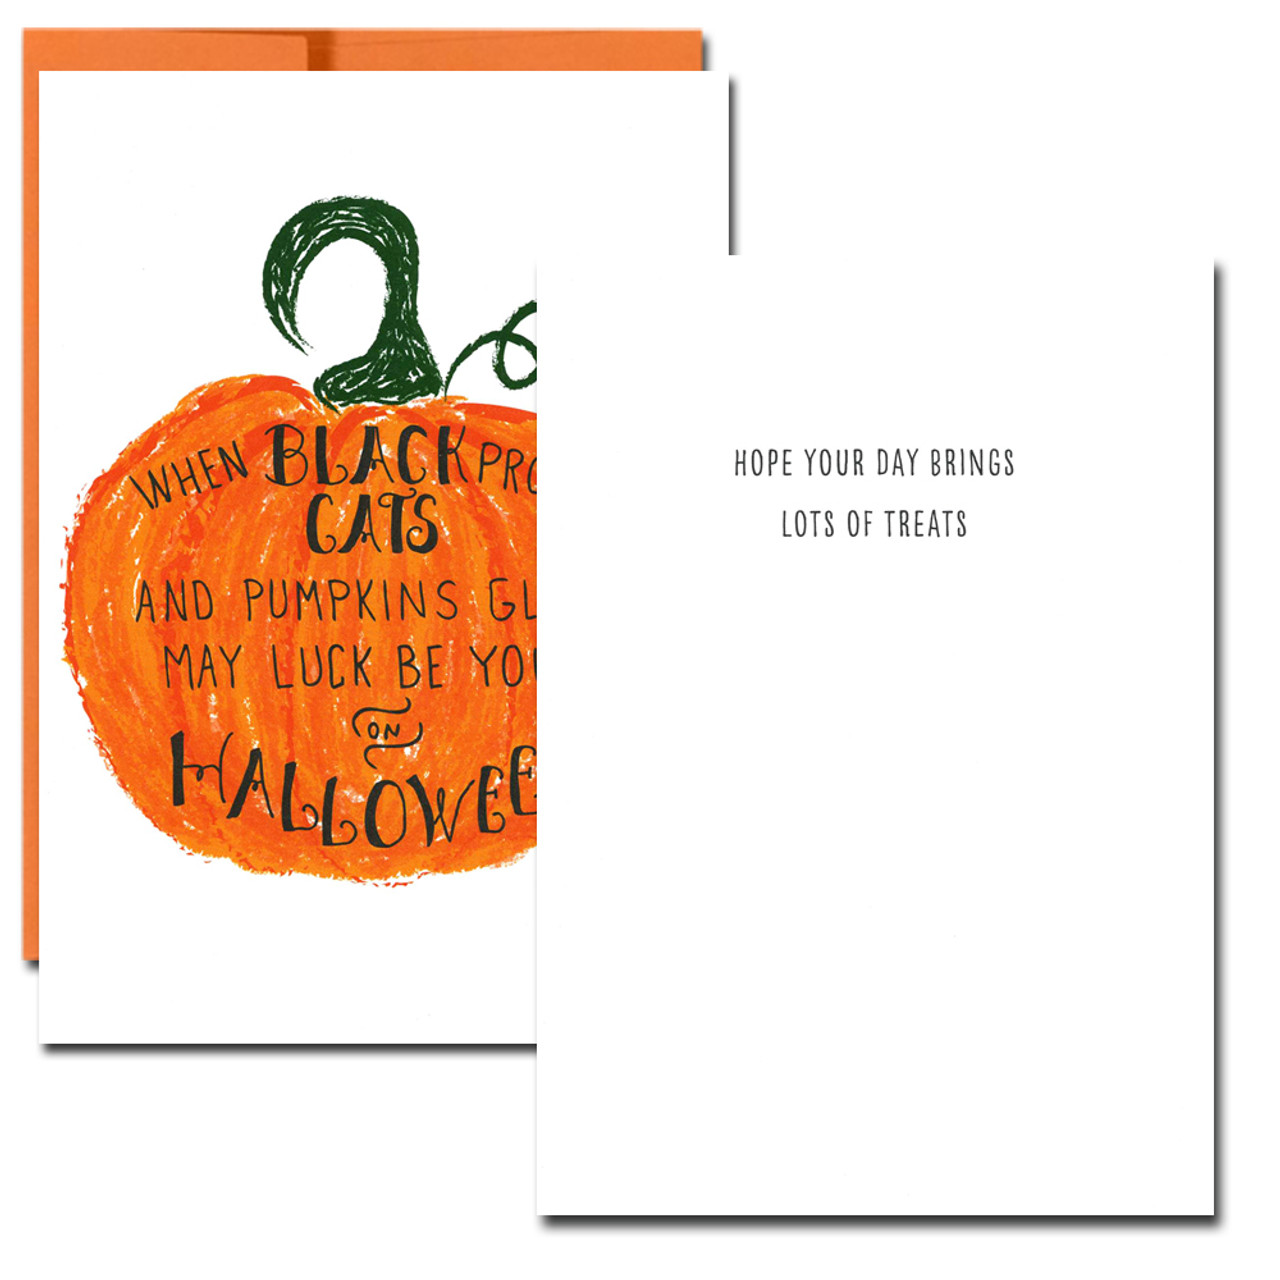 Luck Halloween Card inside - Hope your day brings lots of treats